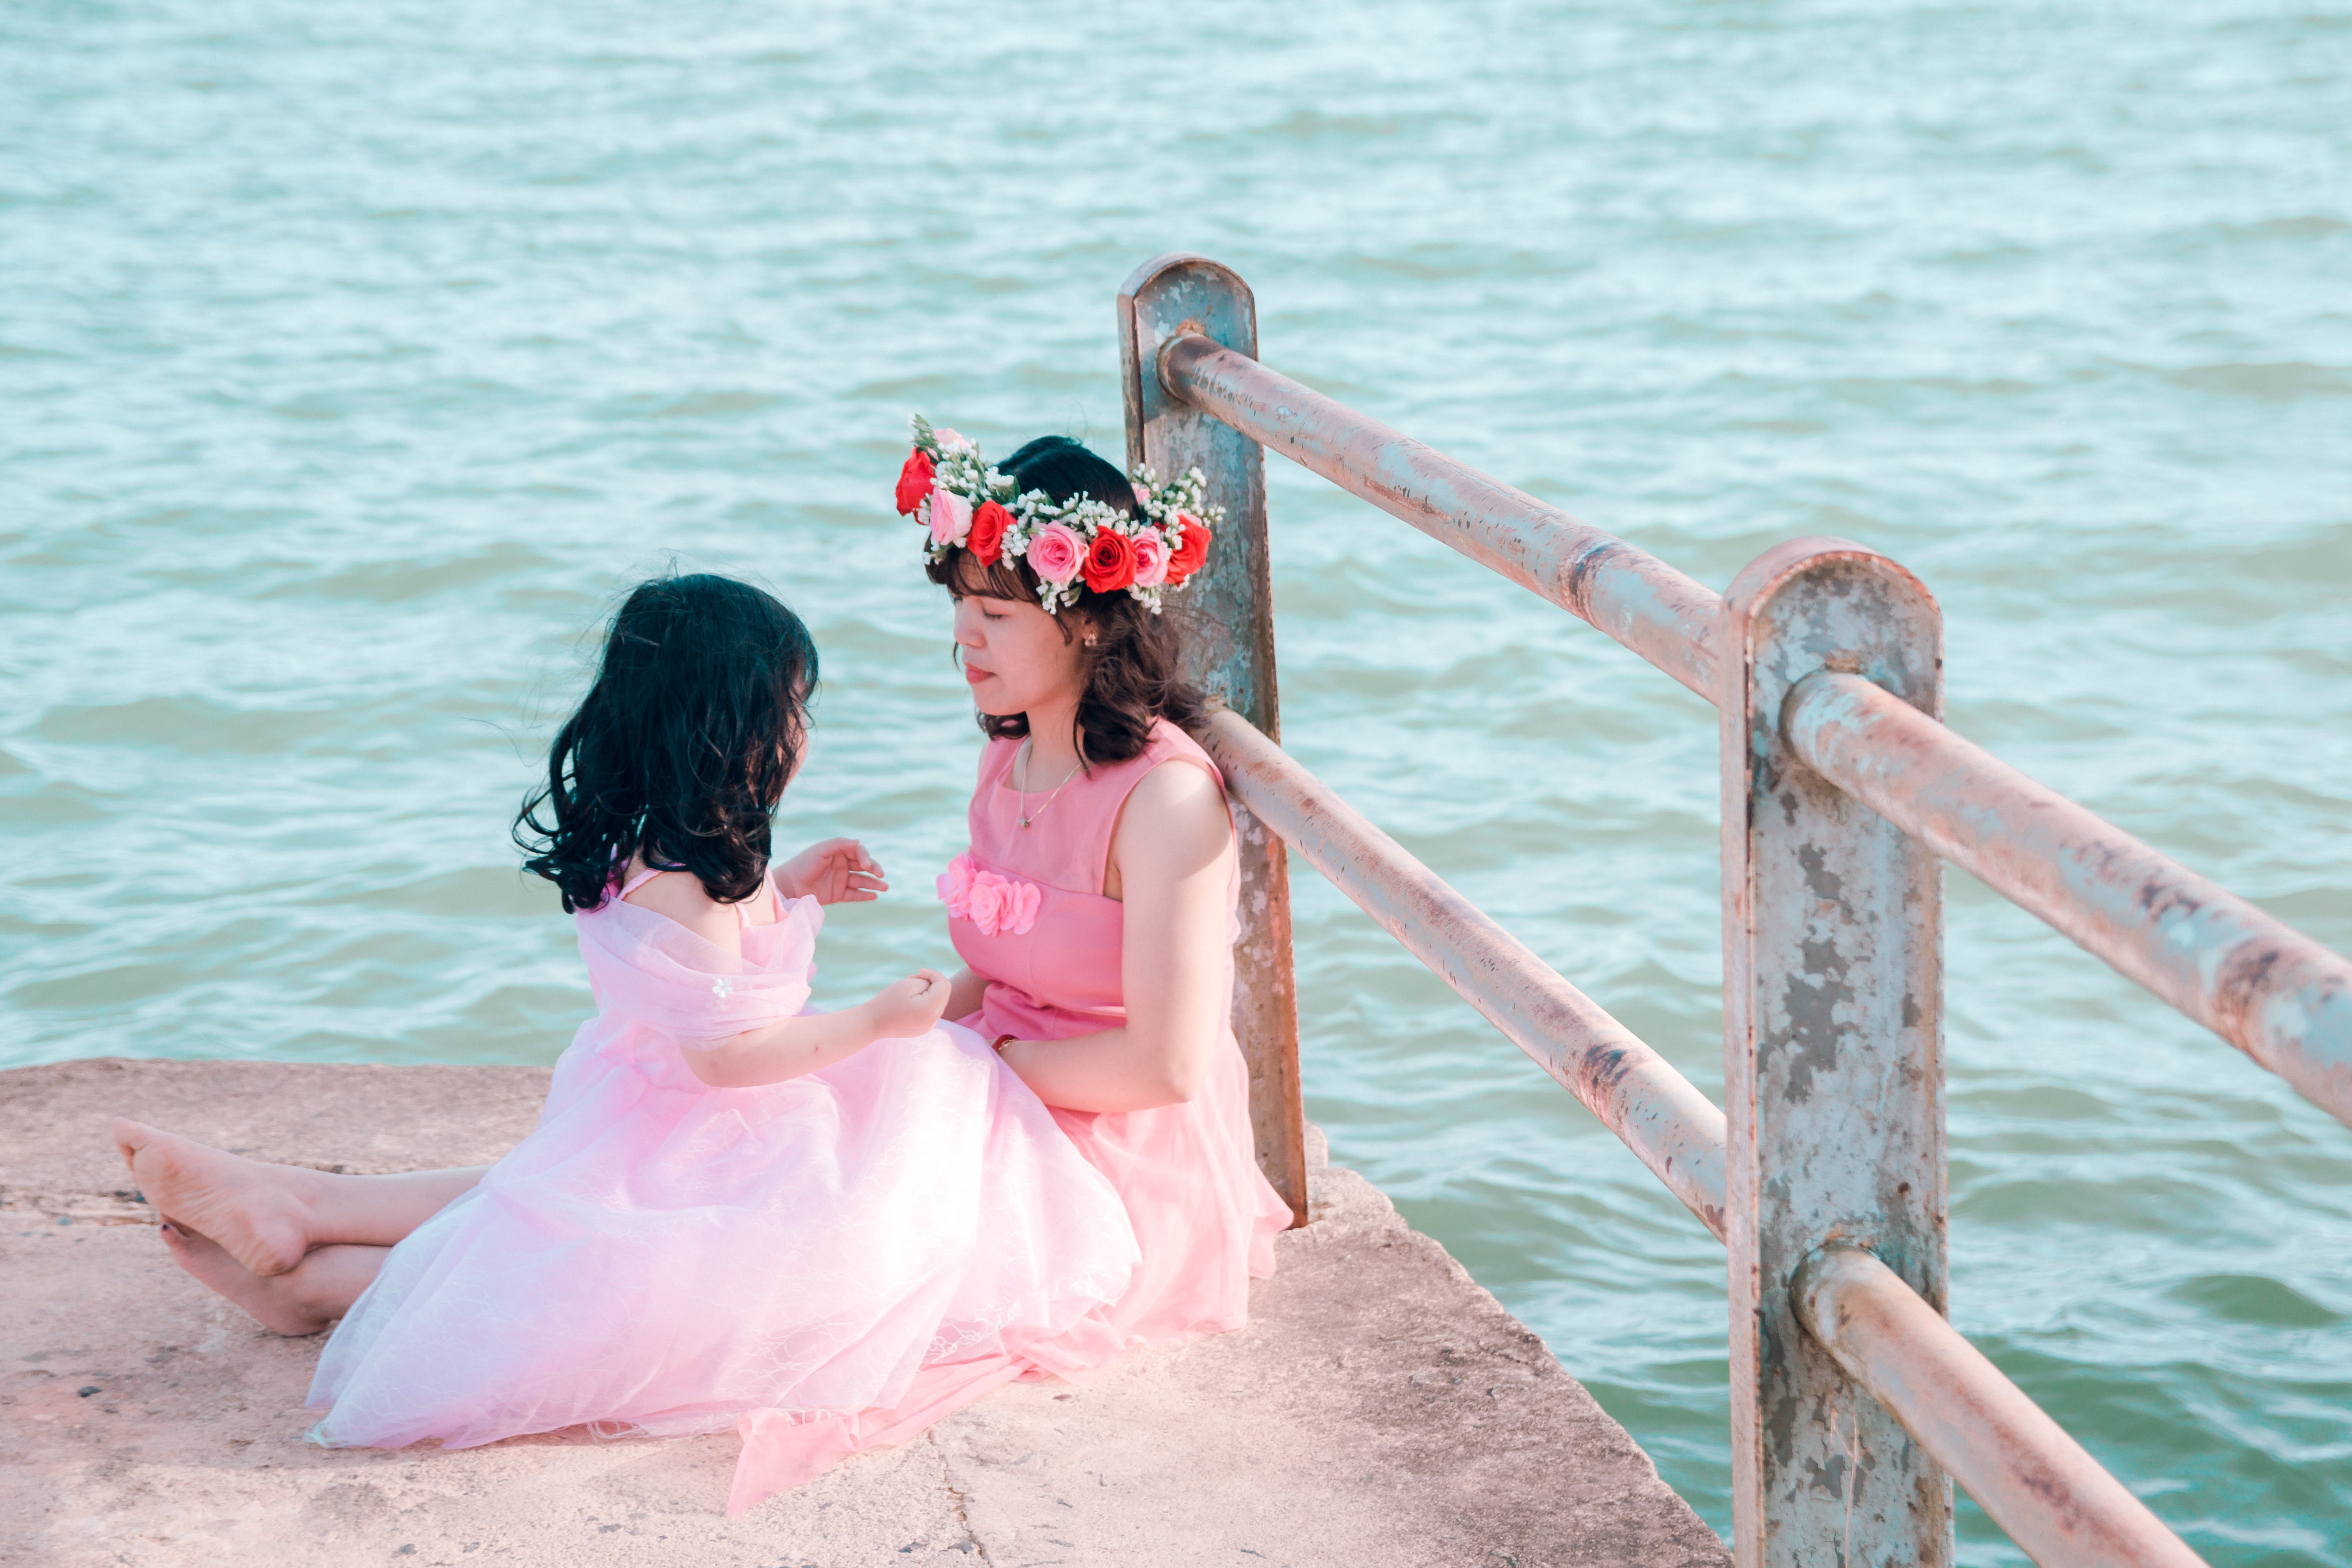 Woman And Girl In Pink Dress Sitting Near Body Of Water